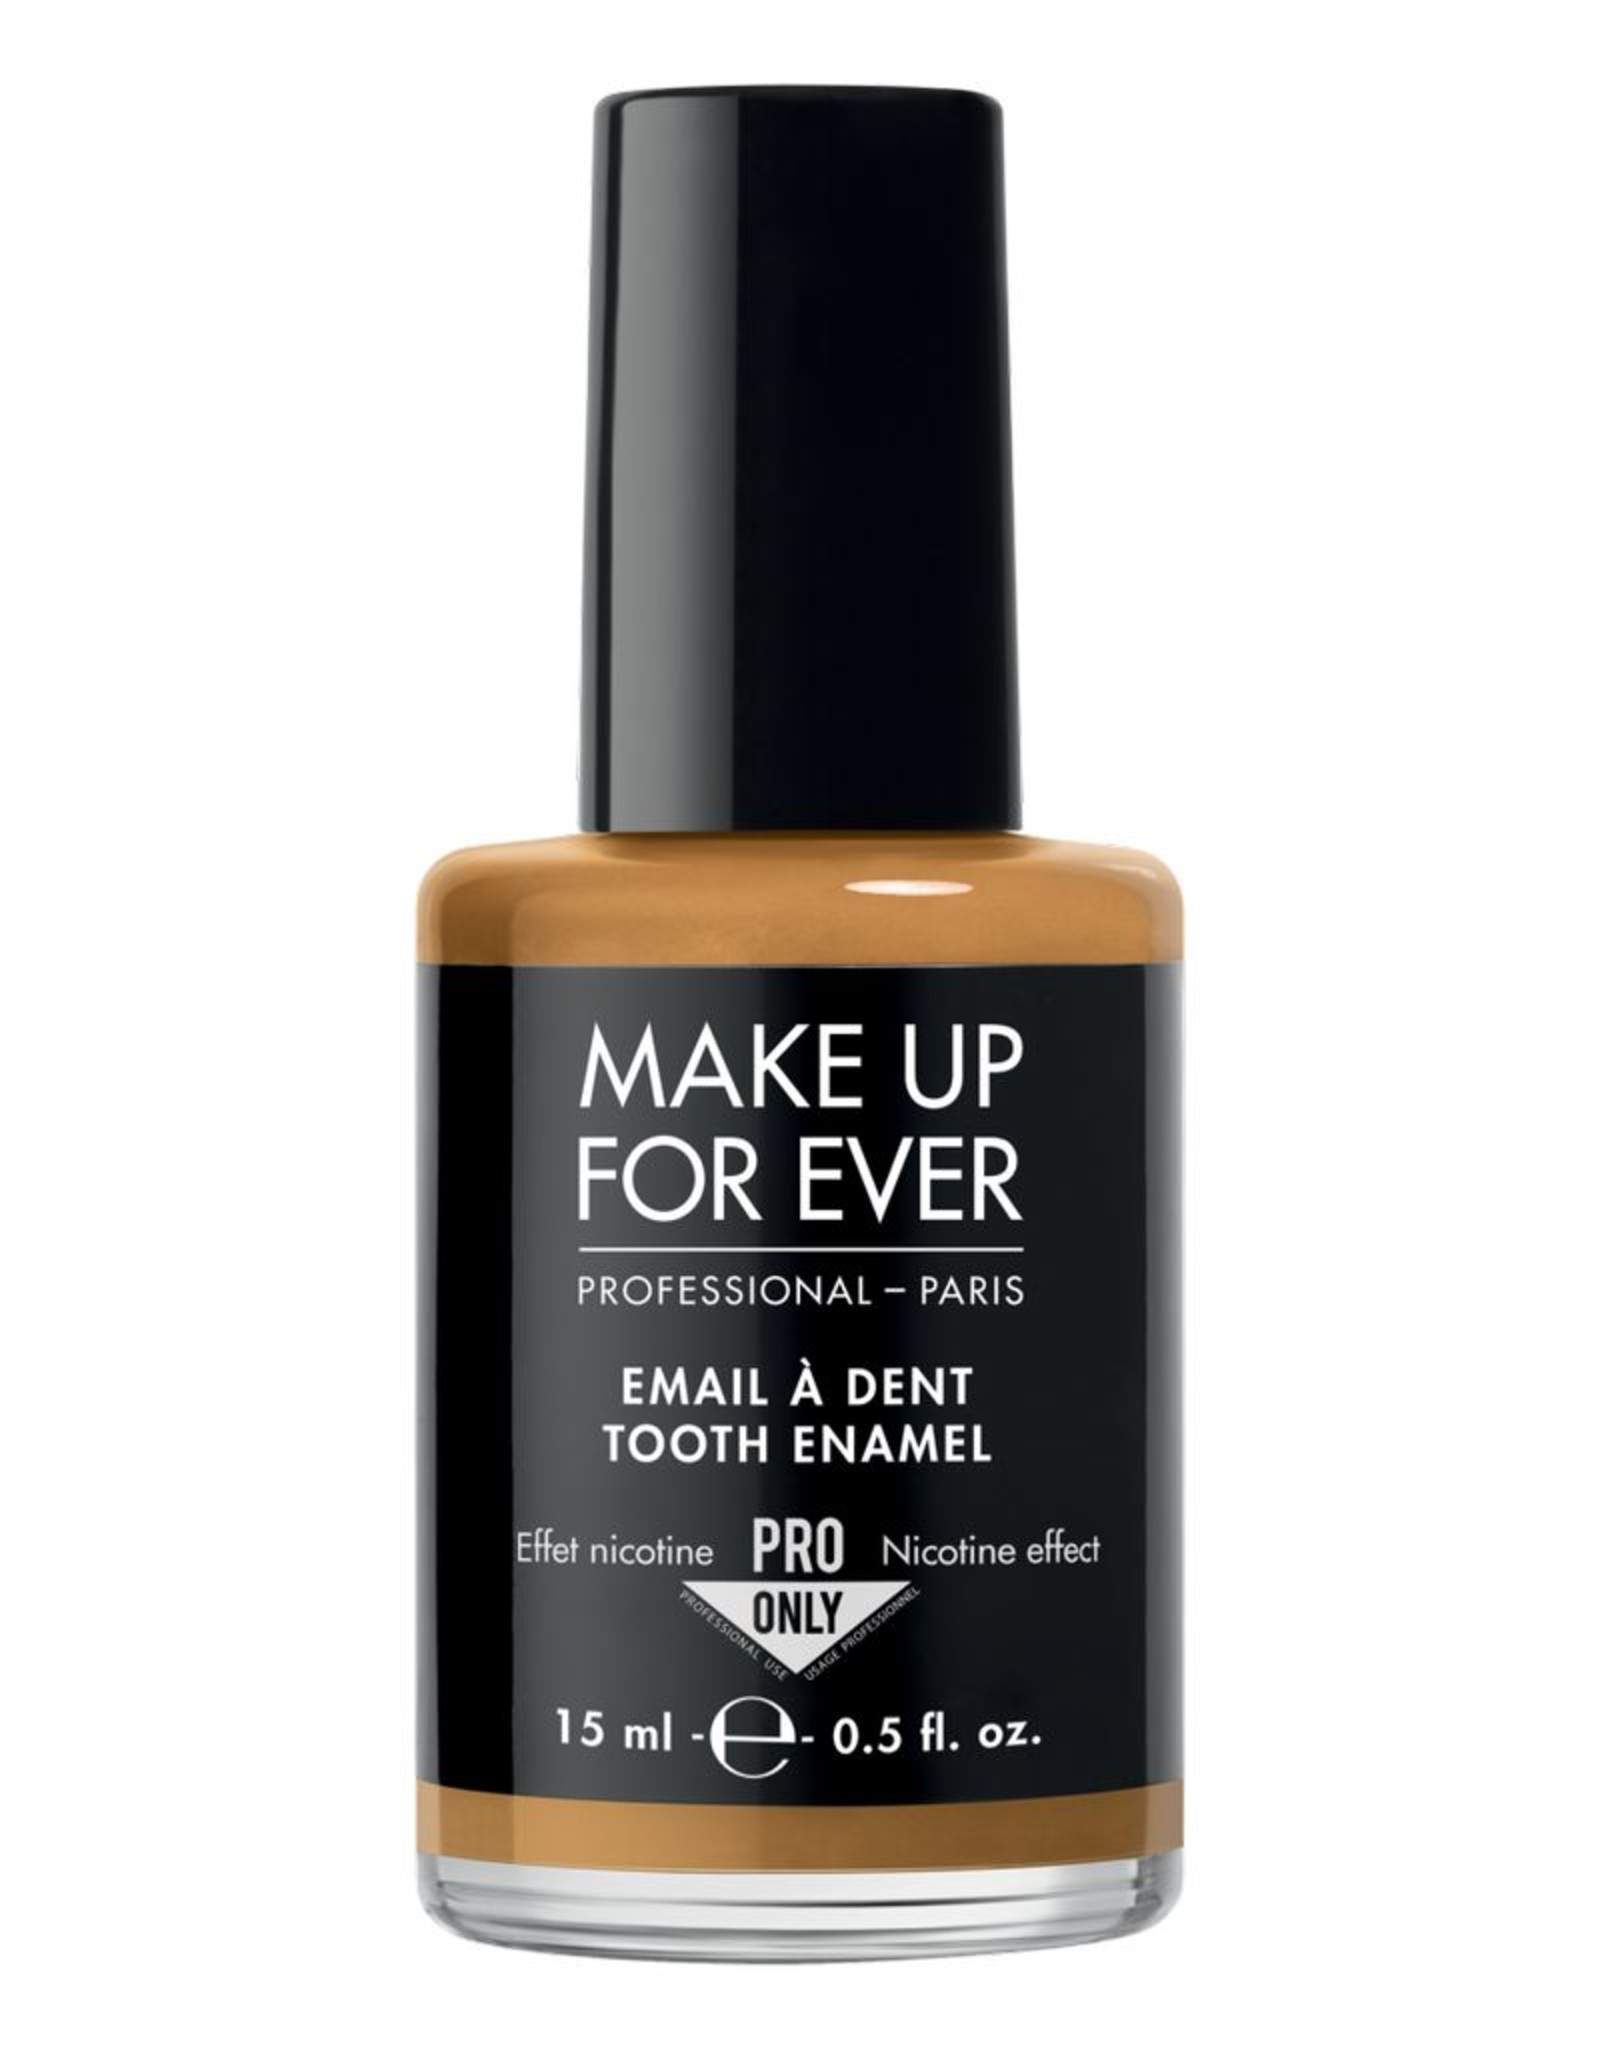 MUFE EMAIL A DENT NICOTINE 15ml/ TOOTH ENAMEL  NICOTINE 15ml   (UN 1219)